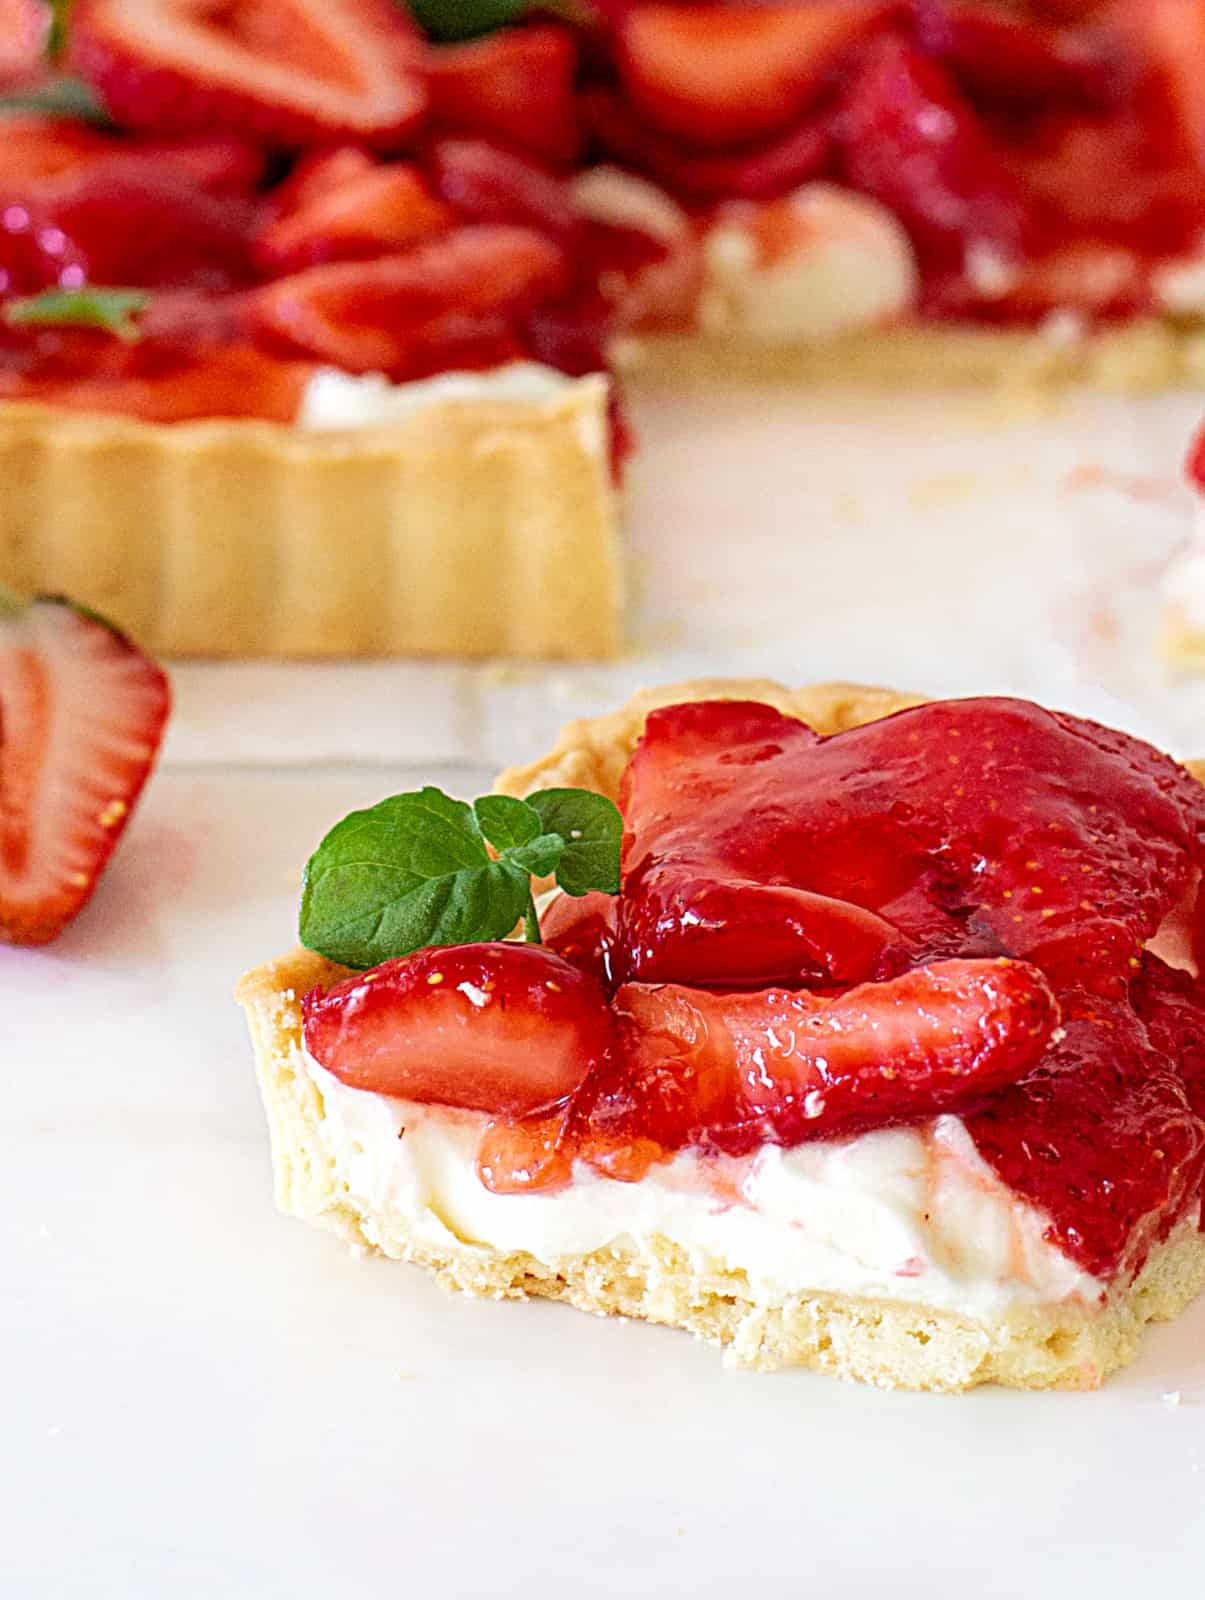 Close-up of square of strawberry cream tart, white surface, mint leaves